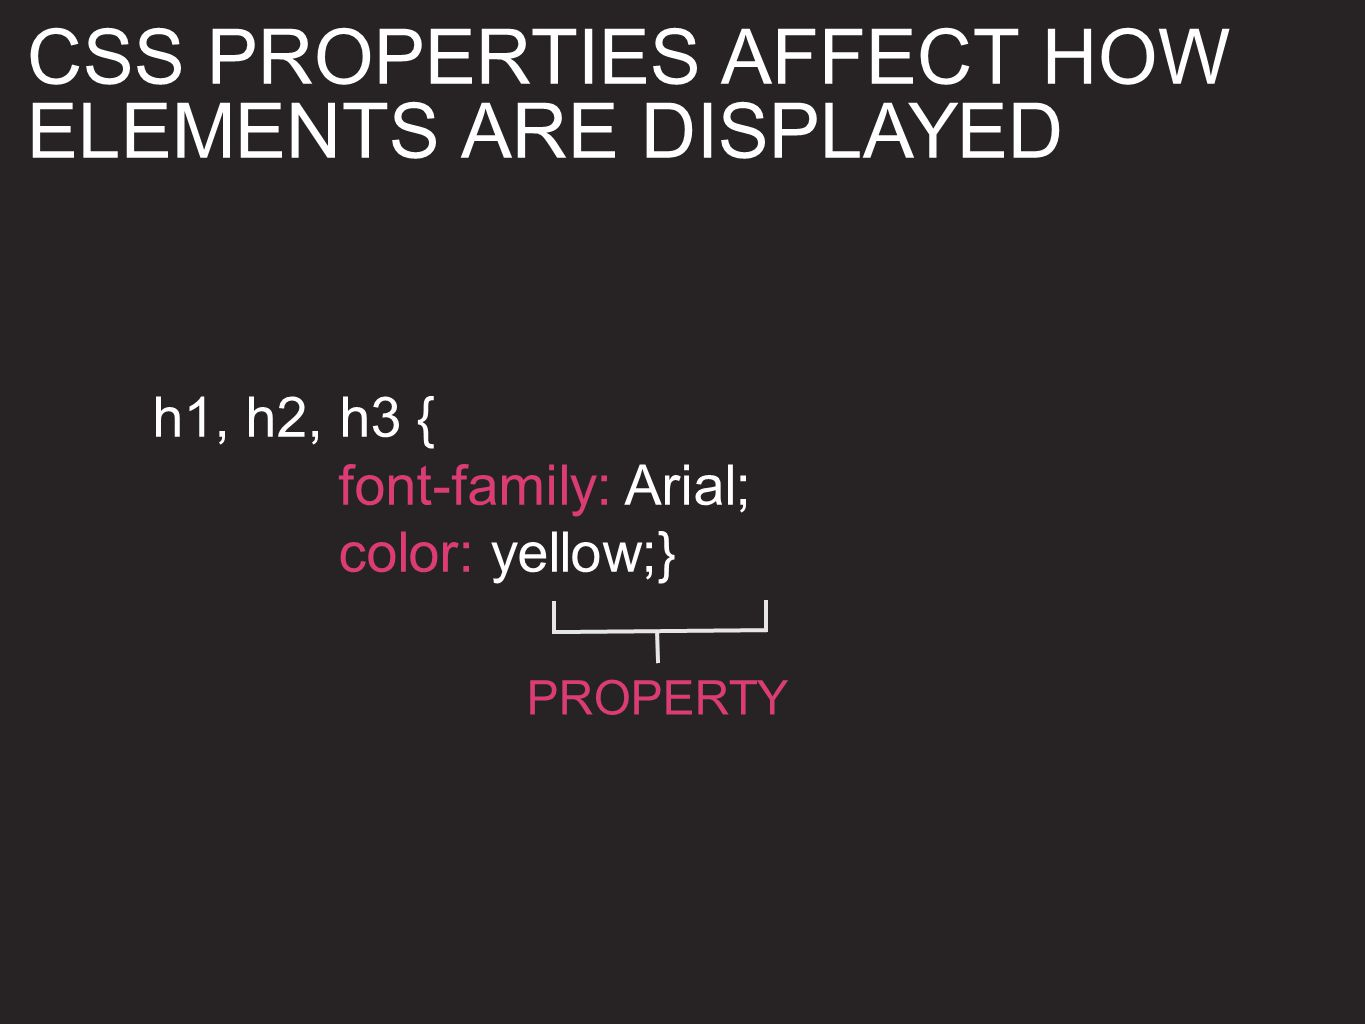 h1, h2, h3 { font-family: Arial; color: yellow;} CSS PROPERTIES AFFECT HOW ELEMENTS ARE DISPLAYED PROPERTY